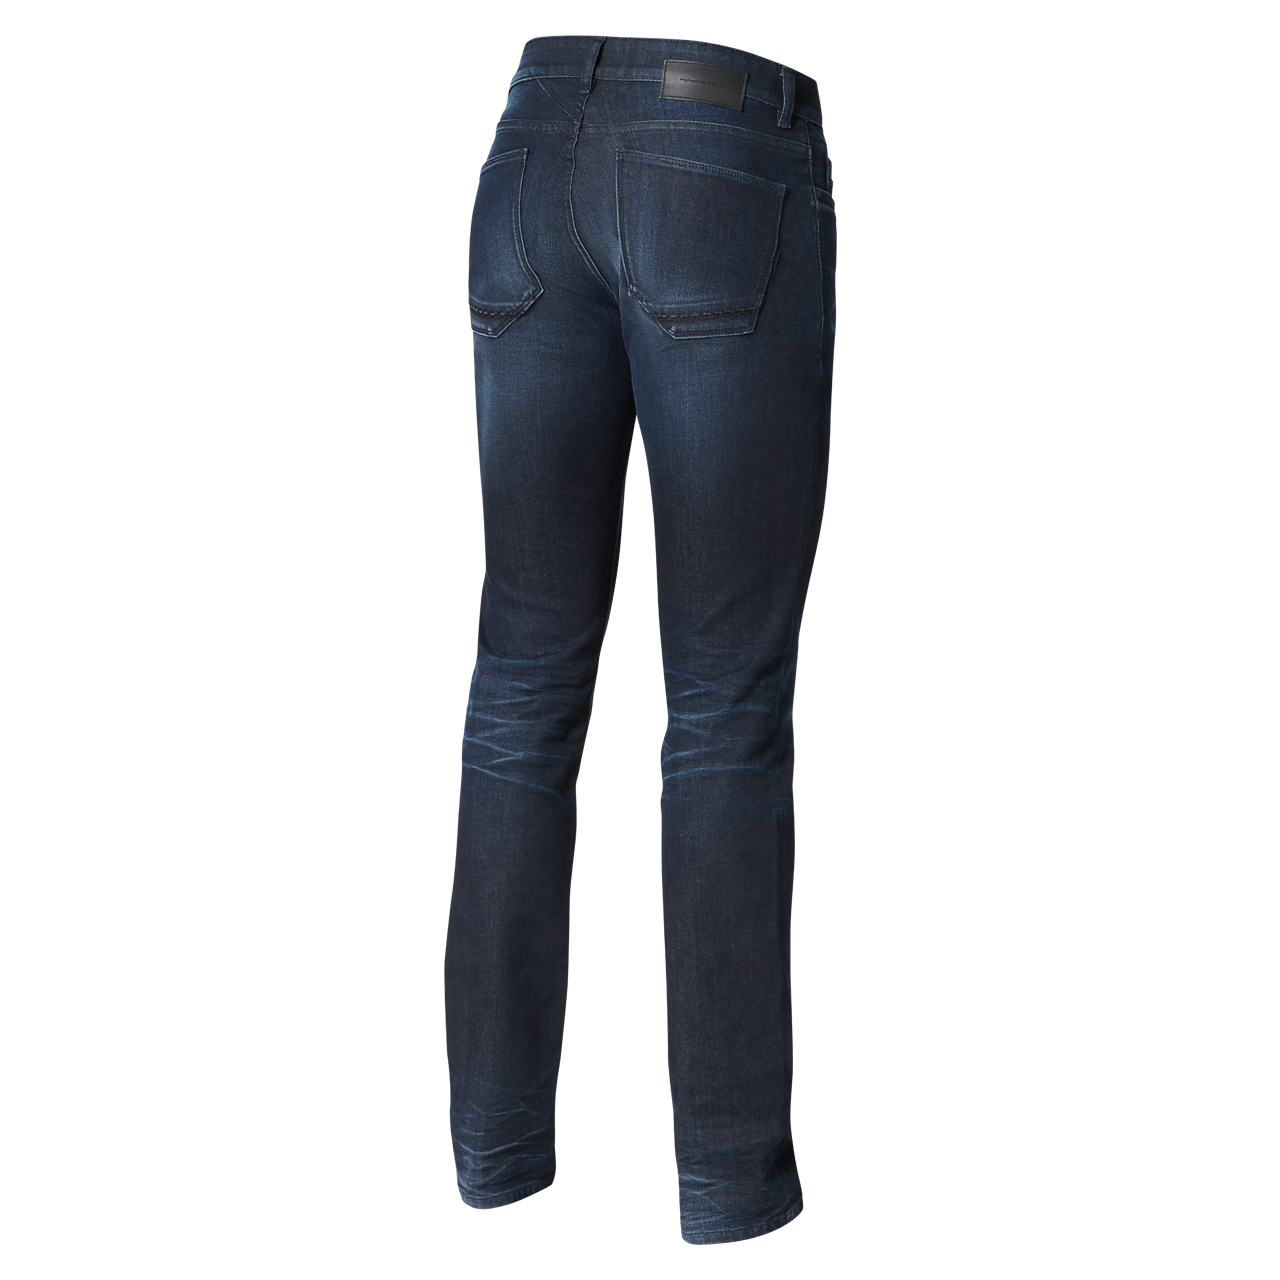 Treated Electrified Slim Fit Pants